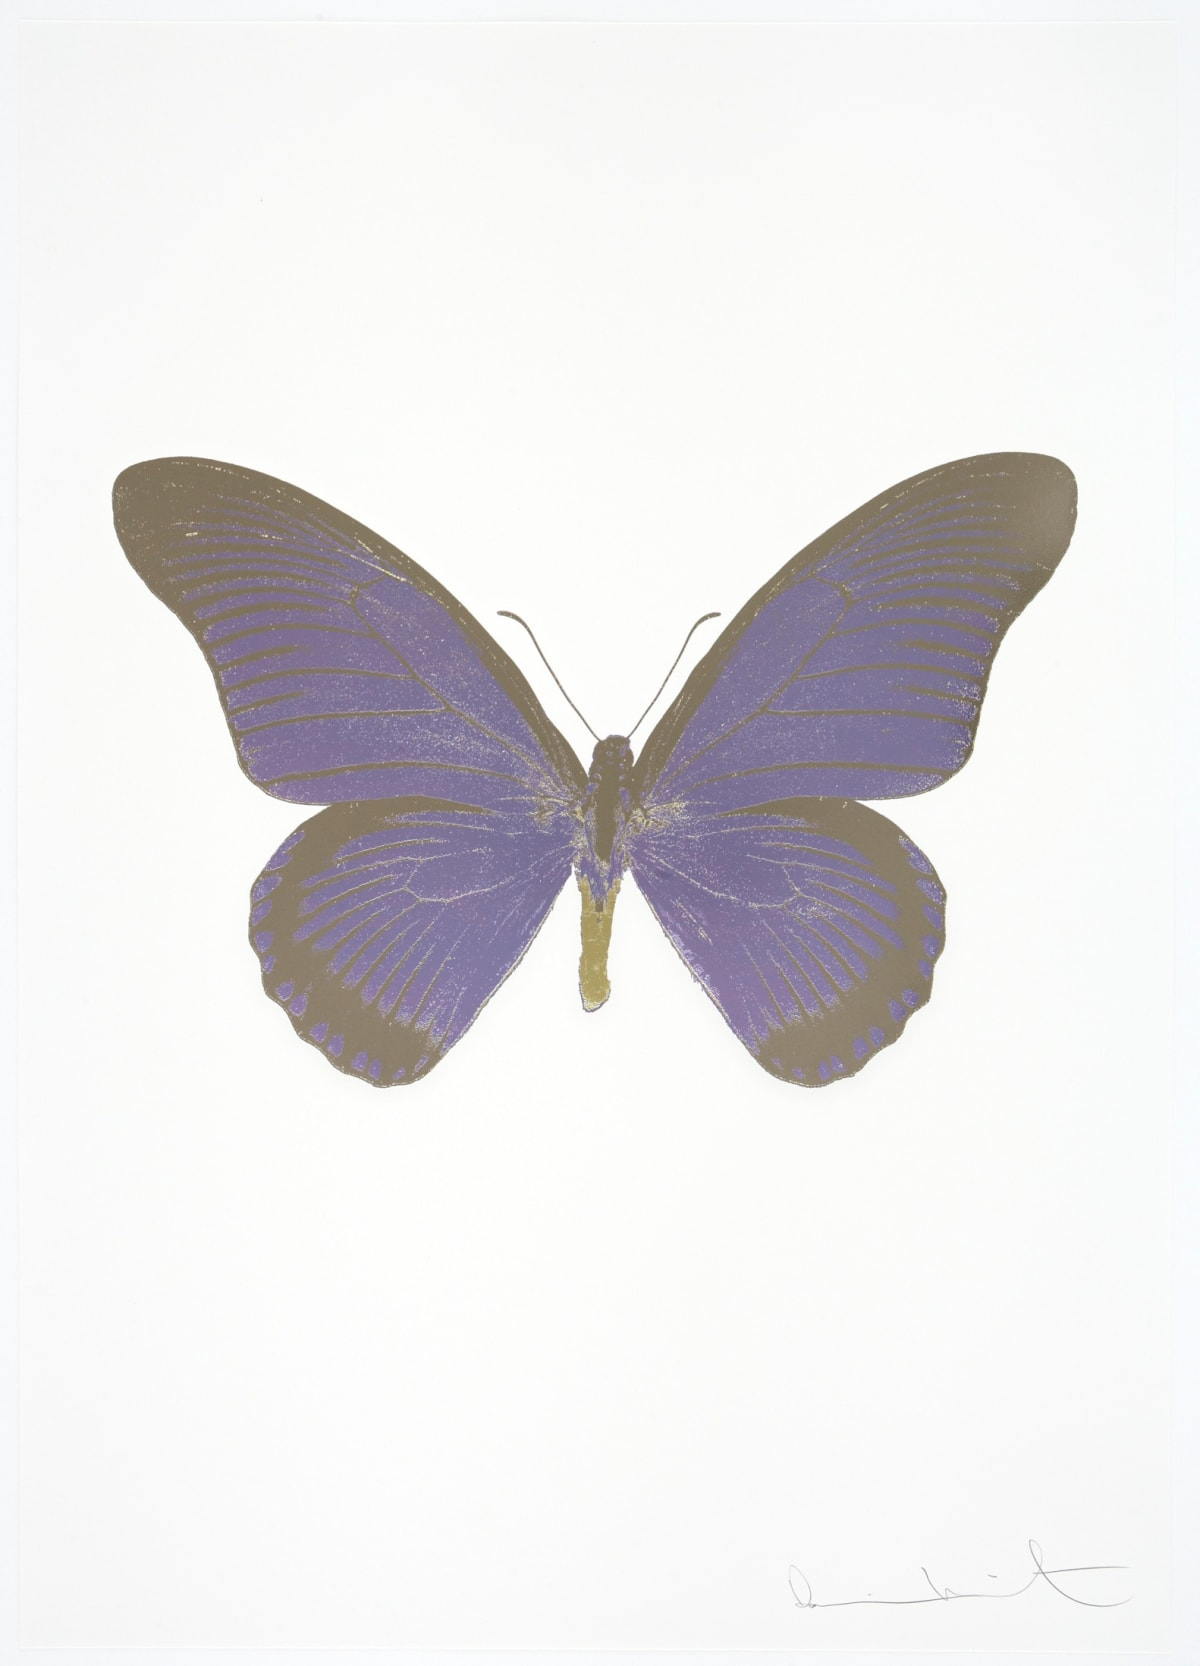 Damien Hirst The Souls IV - Aquarius/Gunmetal/Cool Gold, 2010 3 colour foil block on 300gsm Arches 88 archival paper. Signed and numbered. Published by Paul Stolper and Other Criteria 72 x 51cm OC8010 / 1418-33 Edition of 15